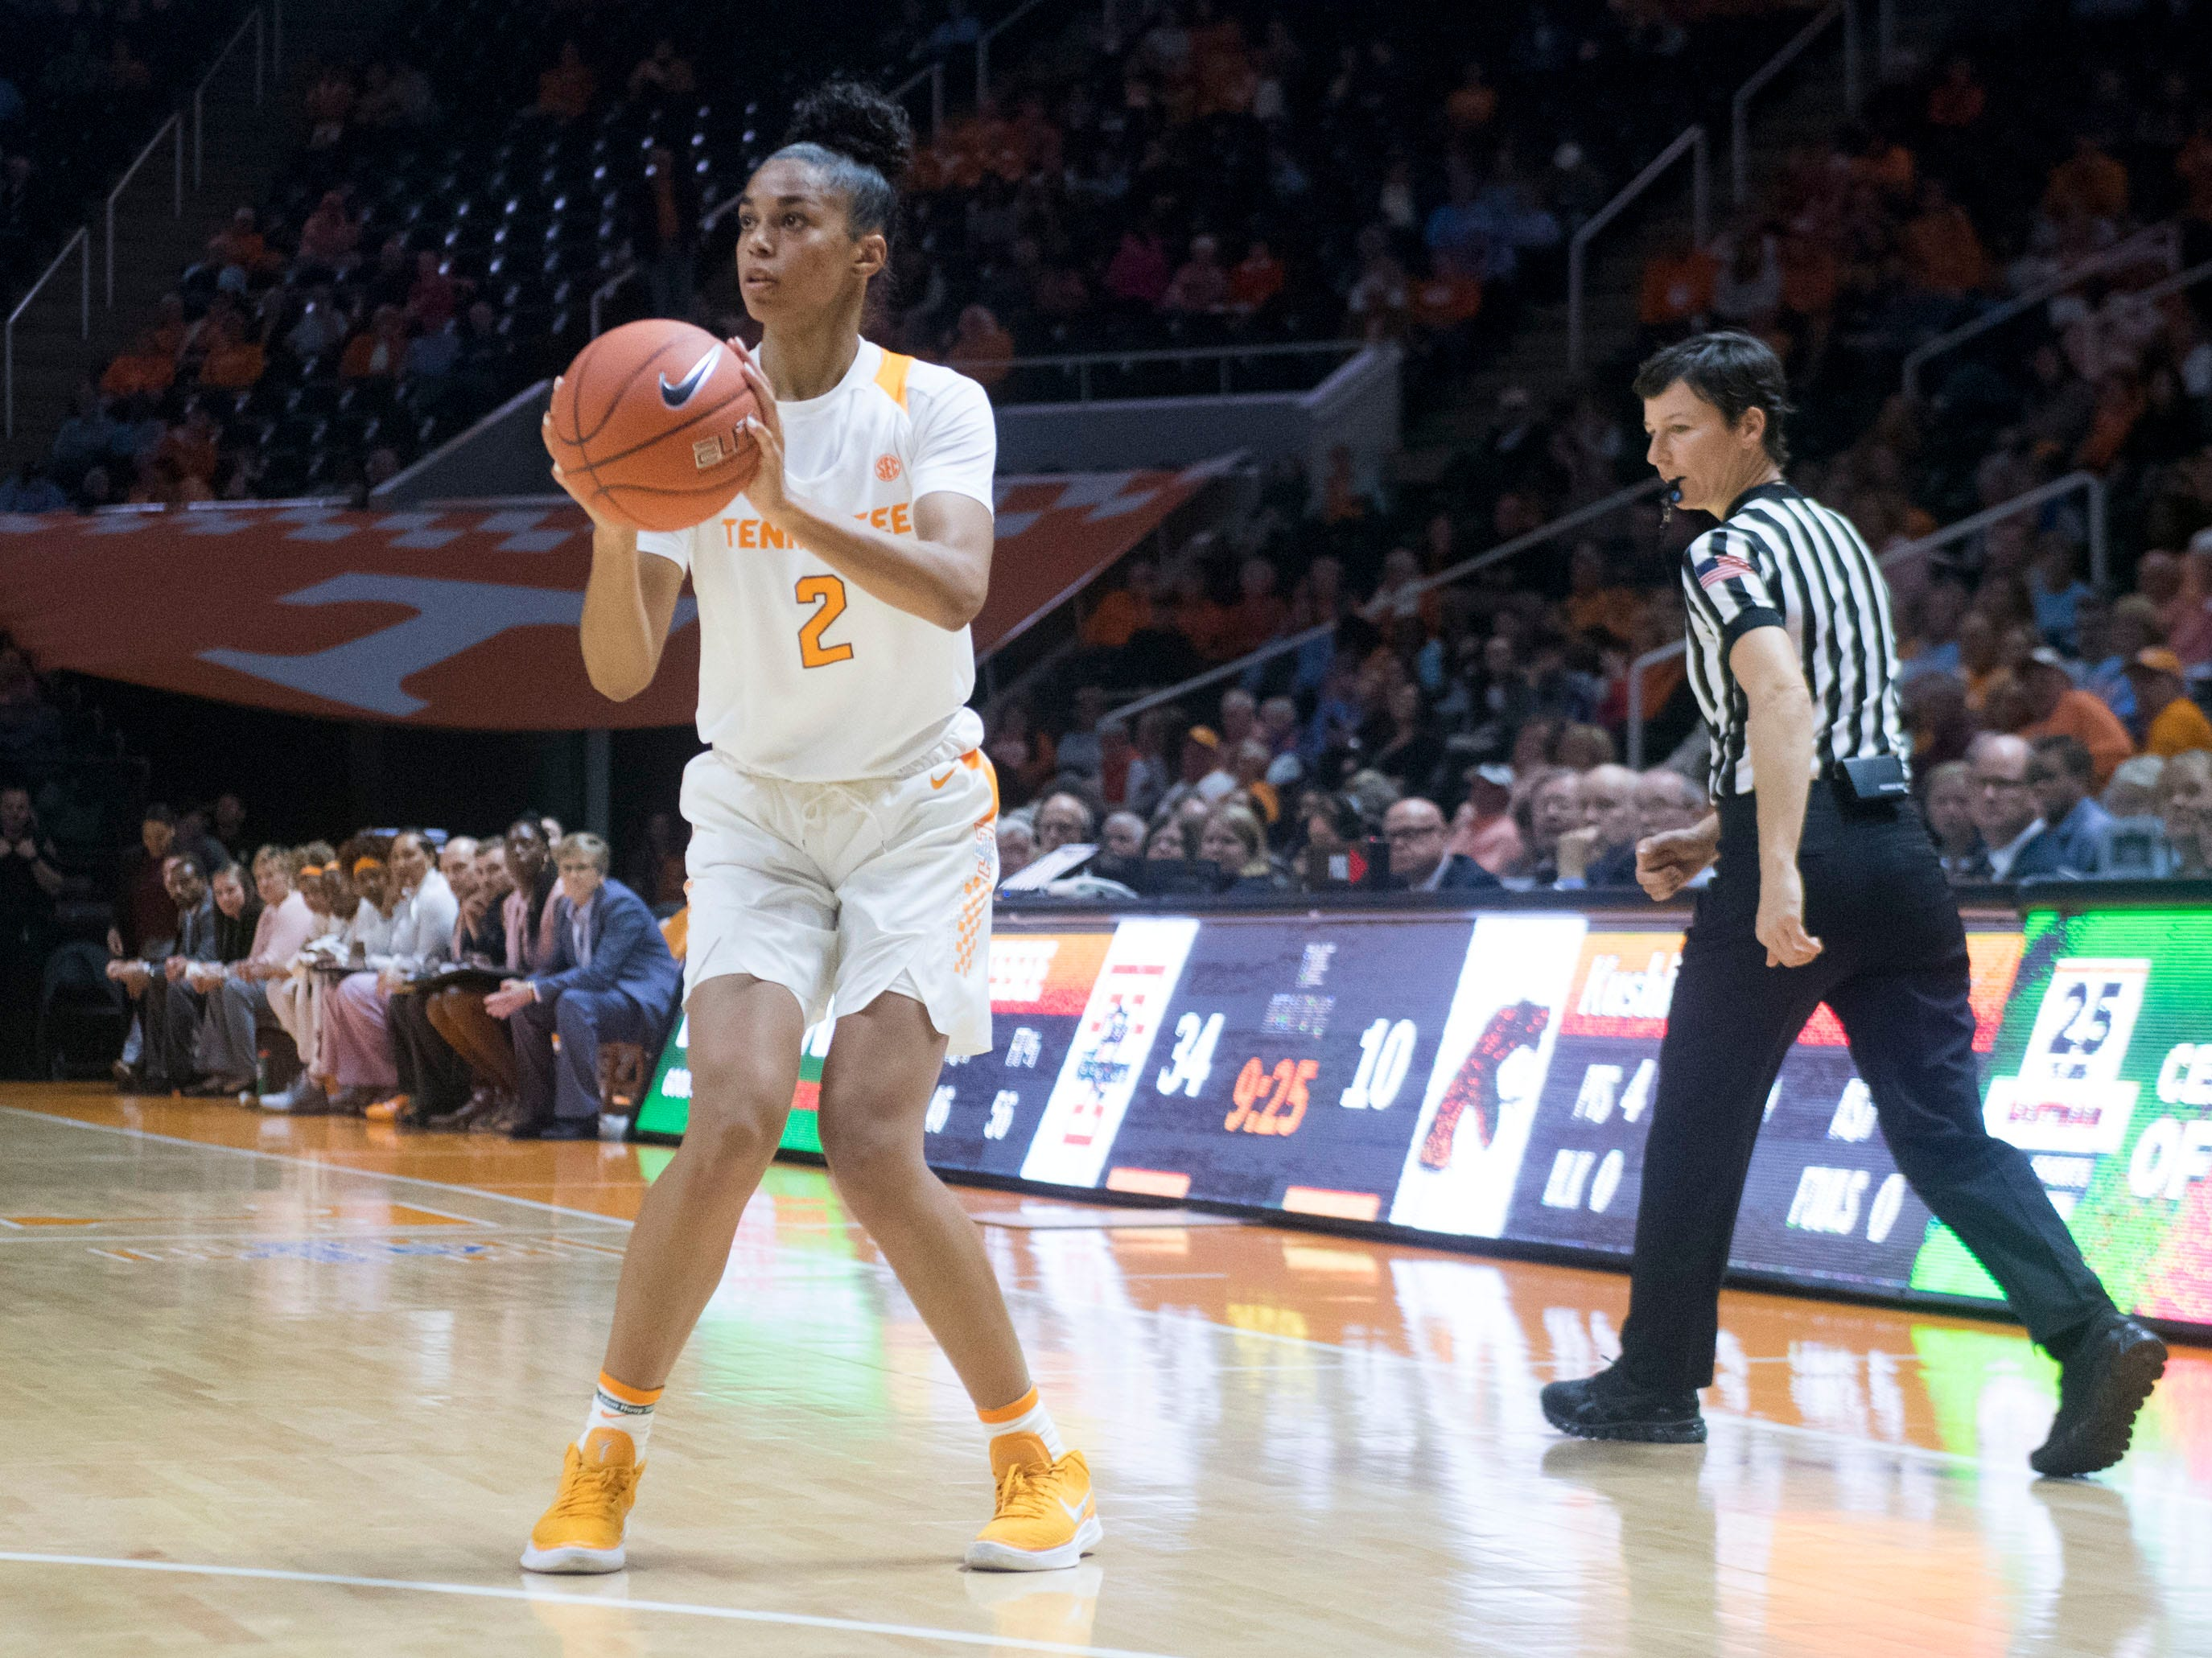 Tennessee's Evina Westbrook (2) on a three-point attempts against Florida A&M on Sunday, November 18, 2018 at Thompson-Boling Arena.